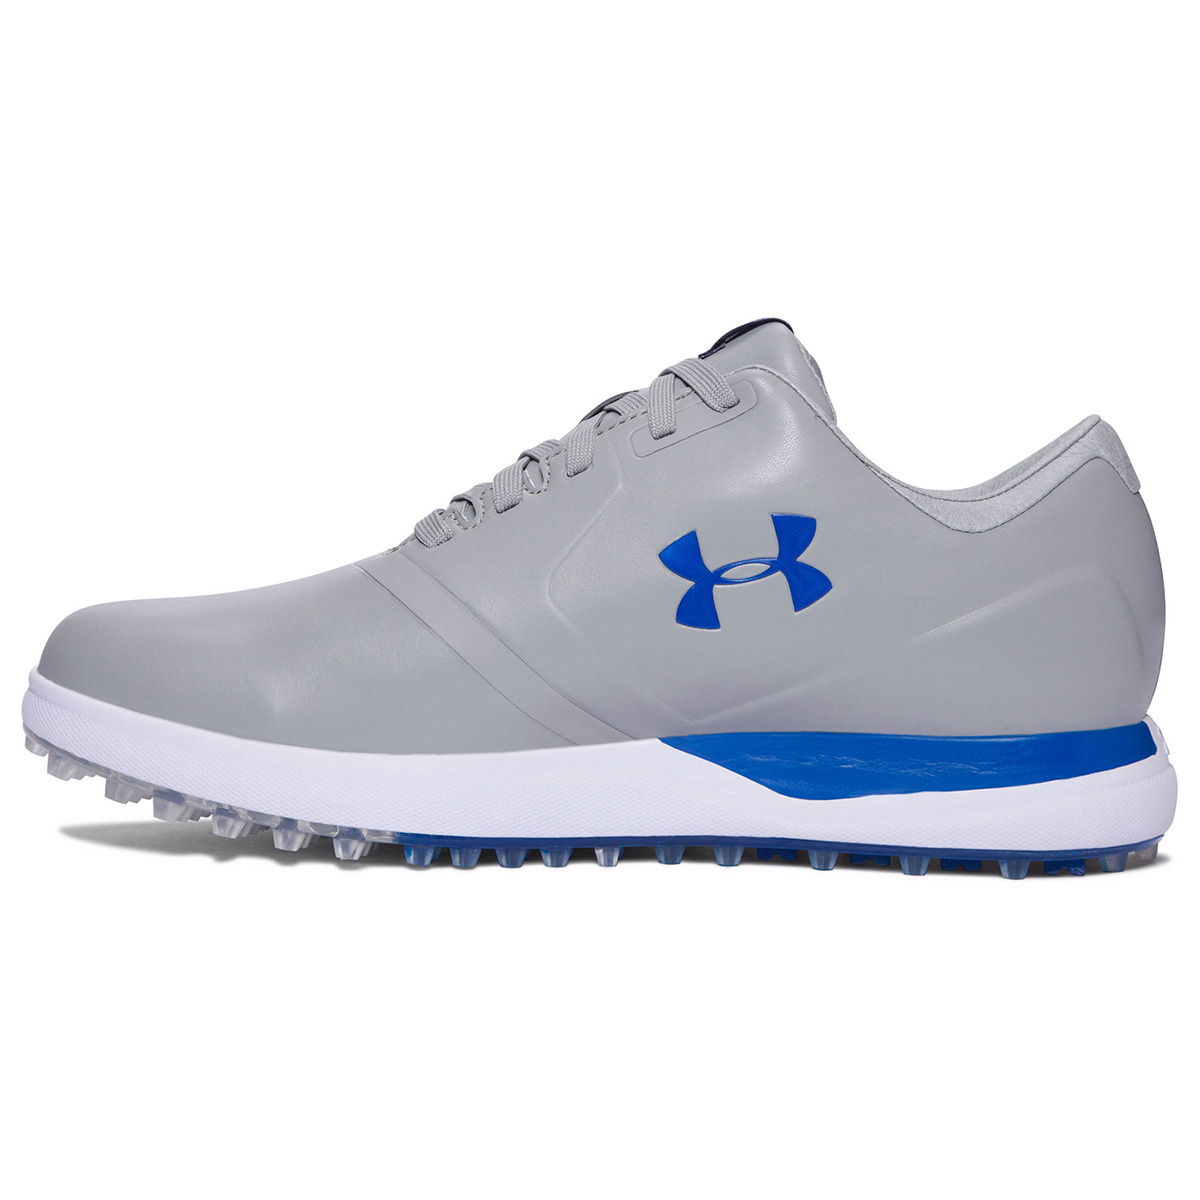 4af74e15ca632f Under Armour Performance Spikeless Shoes from american golf